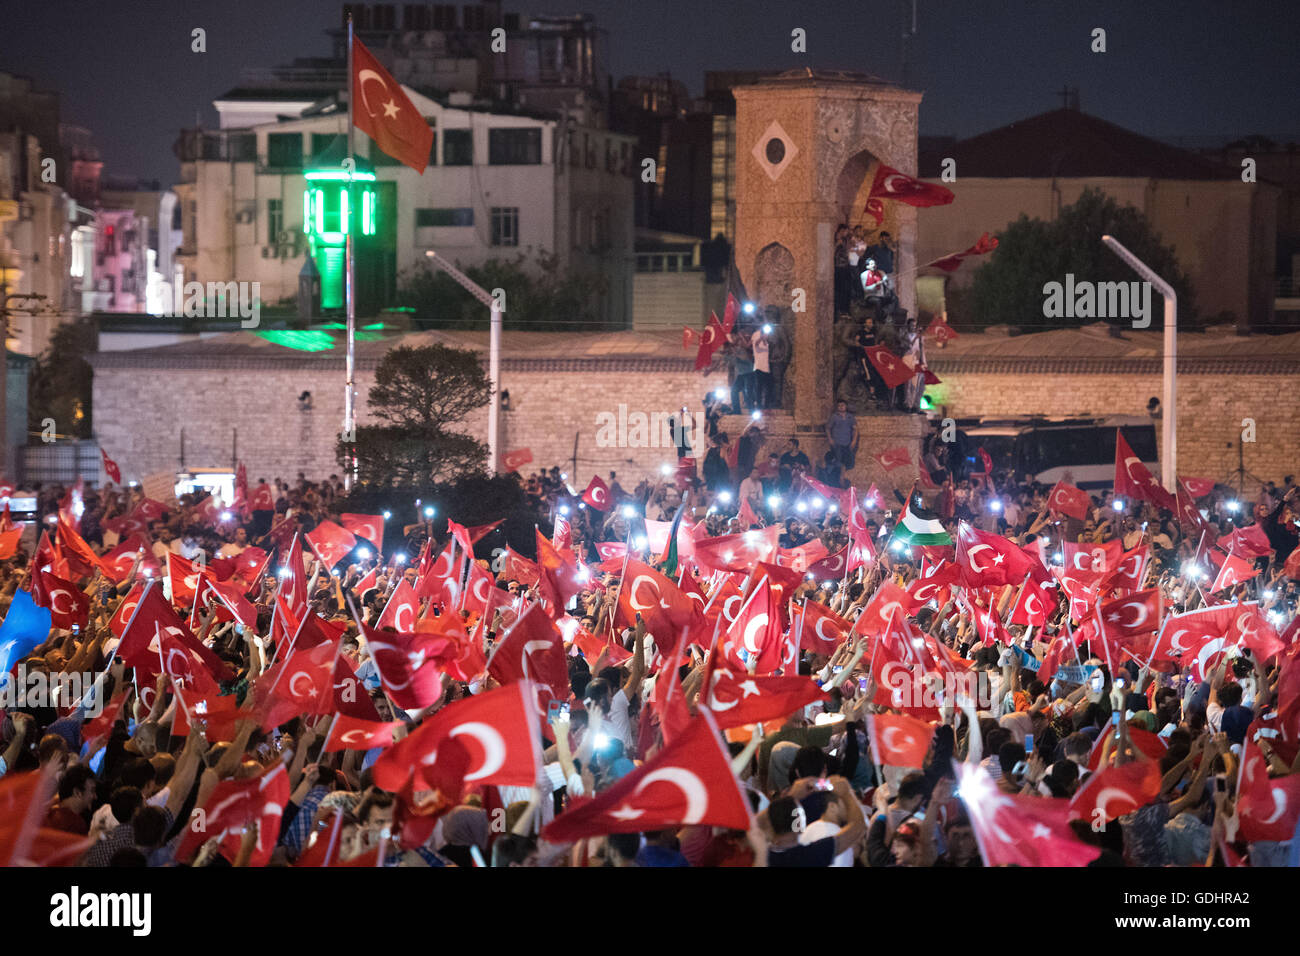 Istanbul, Turkey. 17th July, 2017. People shout slogans and hold flags during a demonstration at Taksim Square in Stock Photo